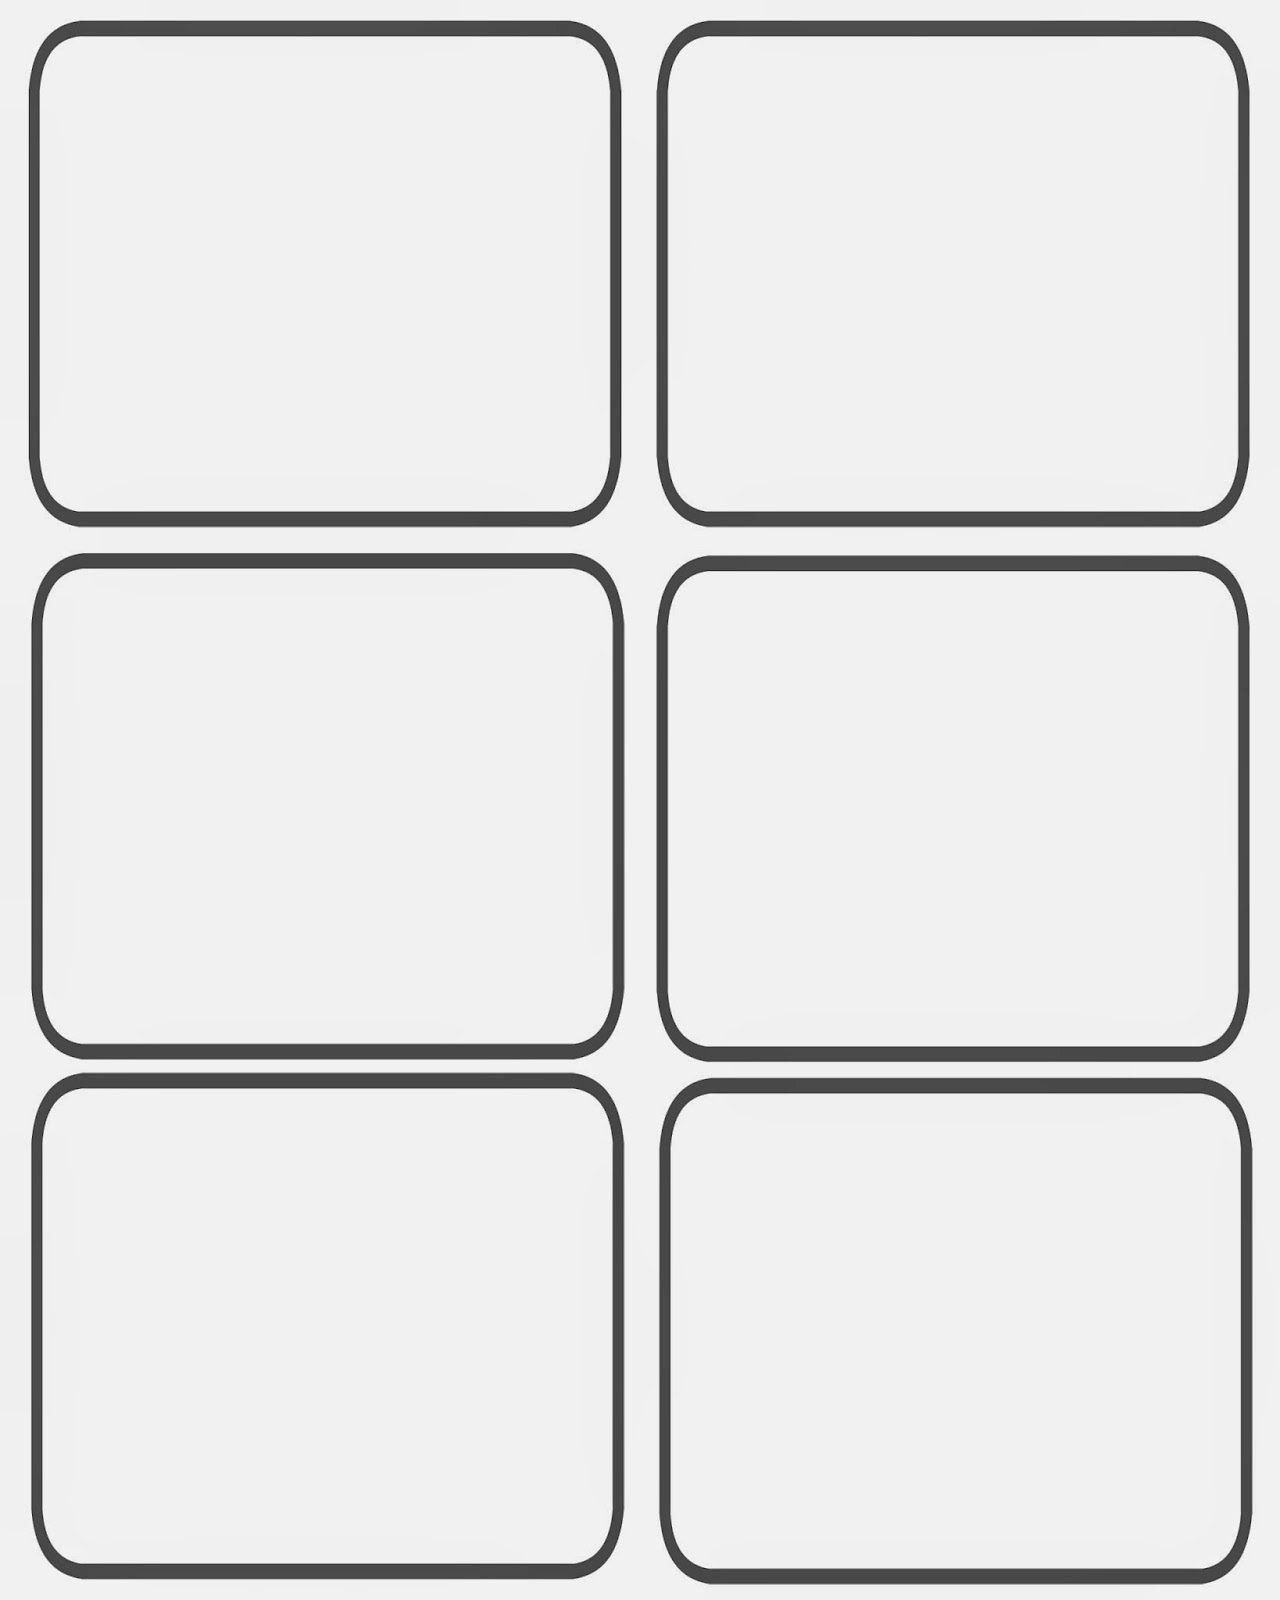 playing card template word beautiful blank game cards in